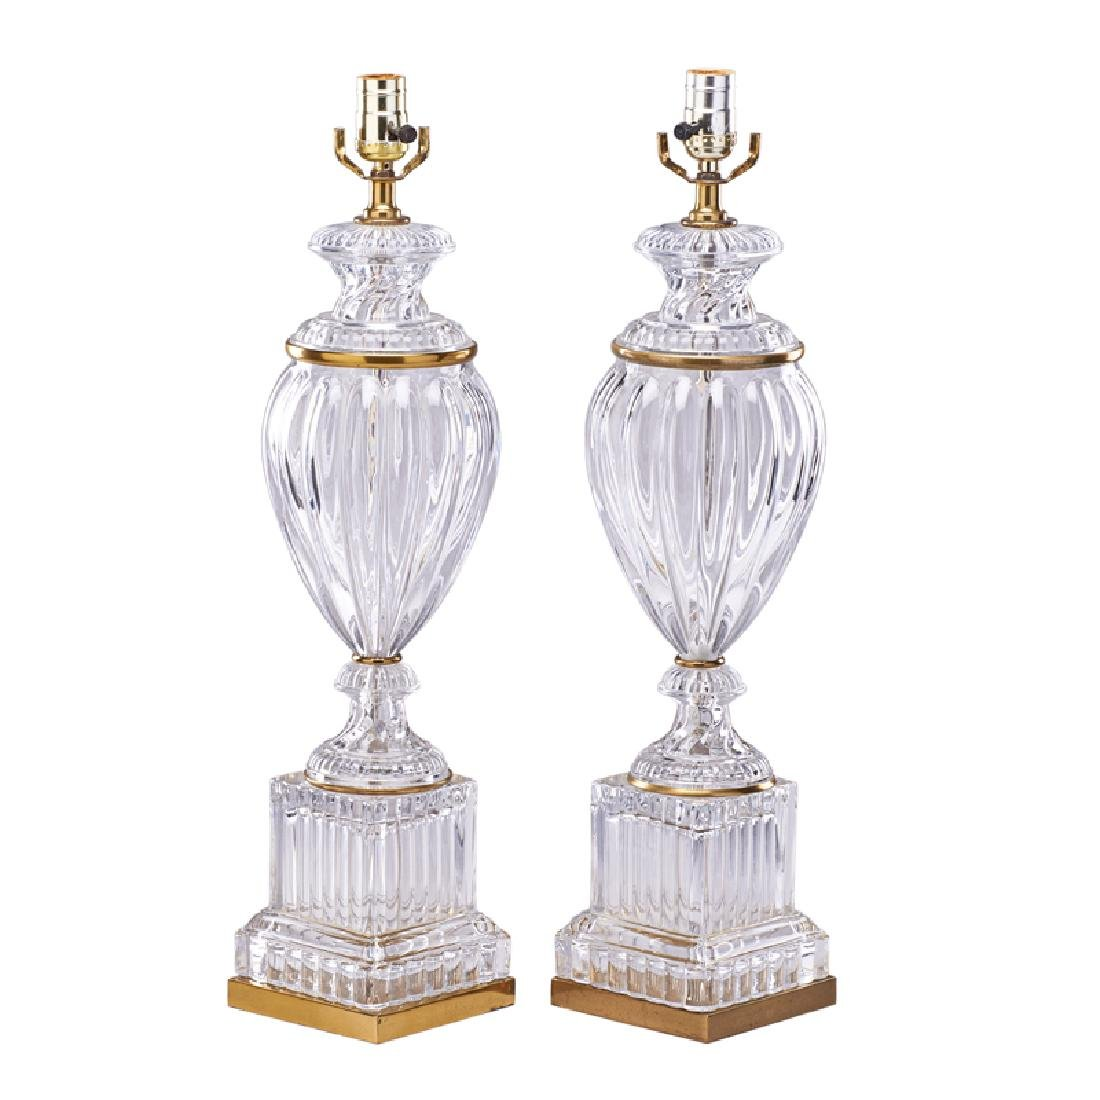 PAIR OF BACCARAT STYLE GLASS TABLE LAMPS